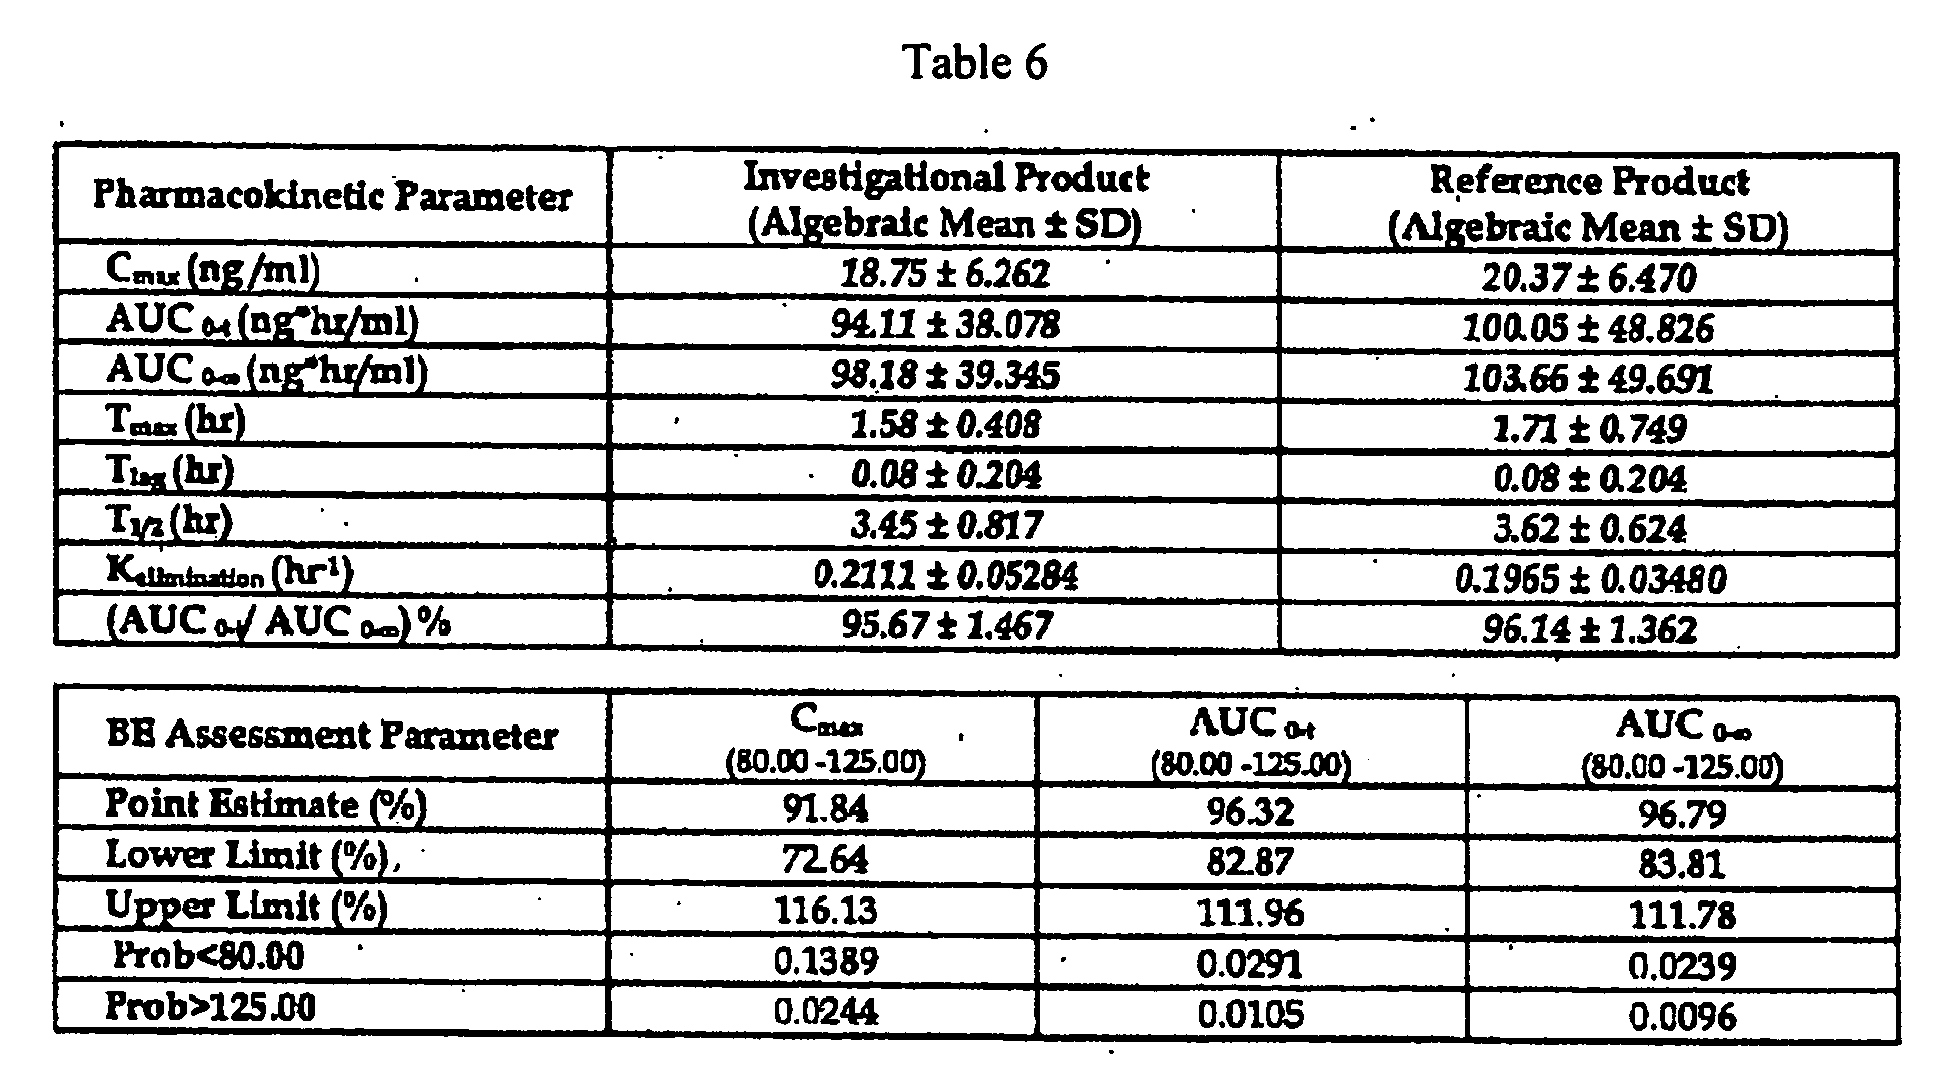 Donepezil Hcl In Subjects